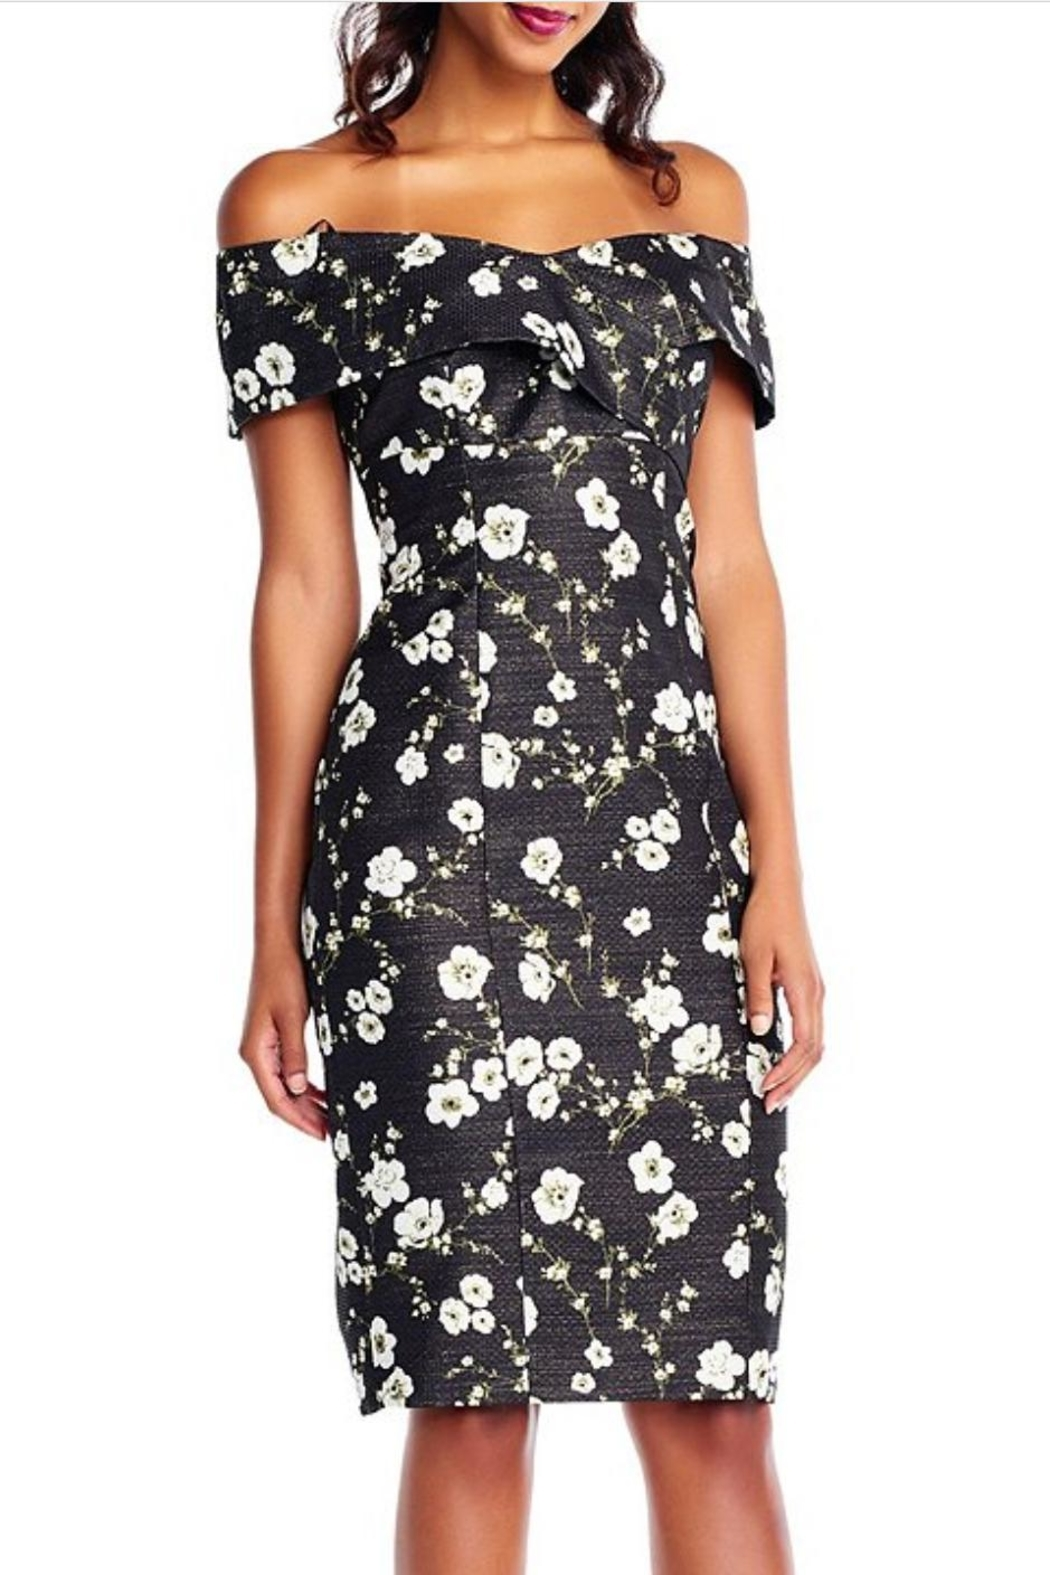 Adrianna Papell Floral Printed Metallic Dress - Main Image